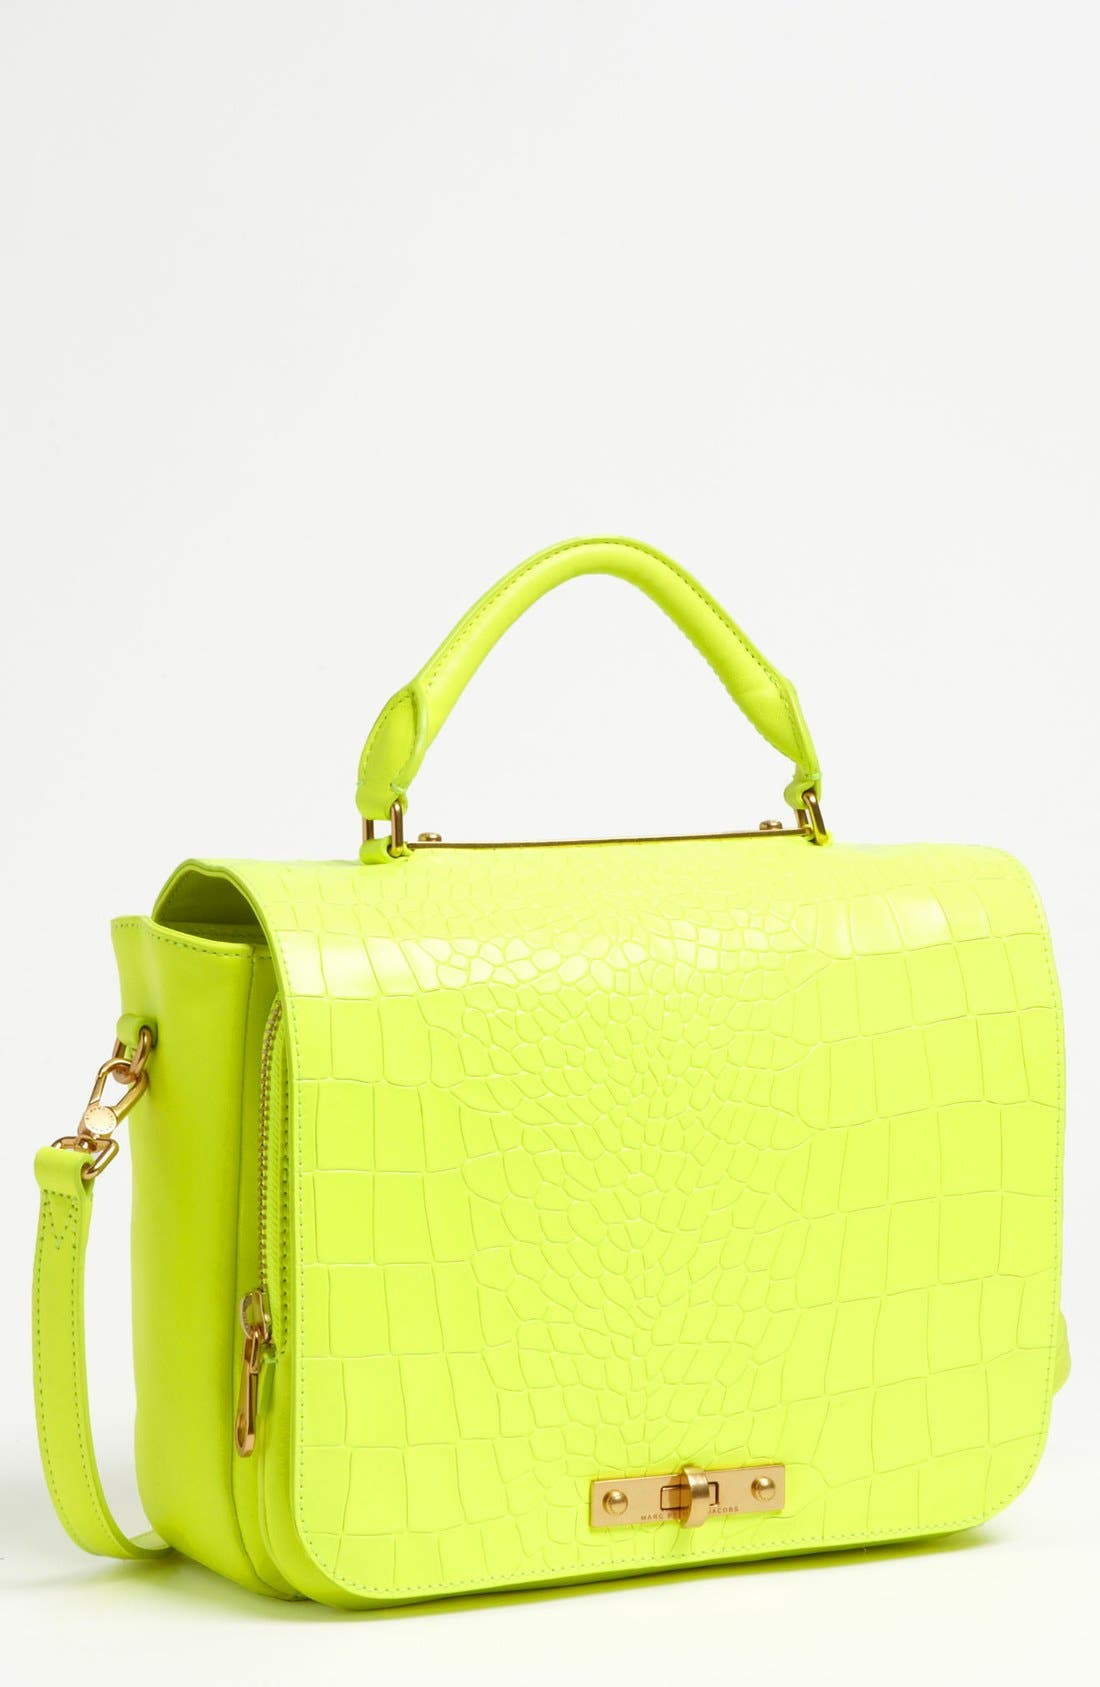 Alternate Image 1 Selected - MARC BY MARC JACOBS 'Goodbye Columbus' Croc Embossed Leather Satchel